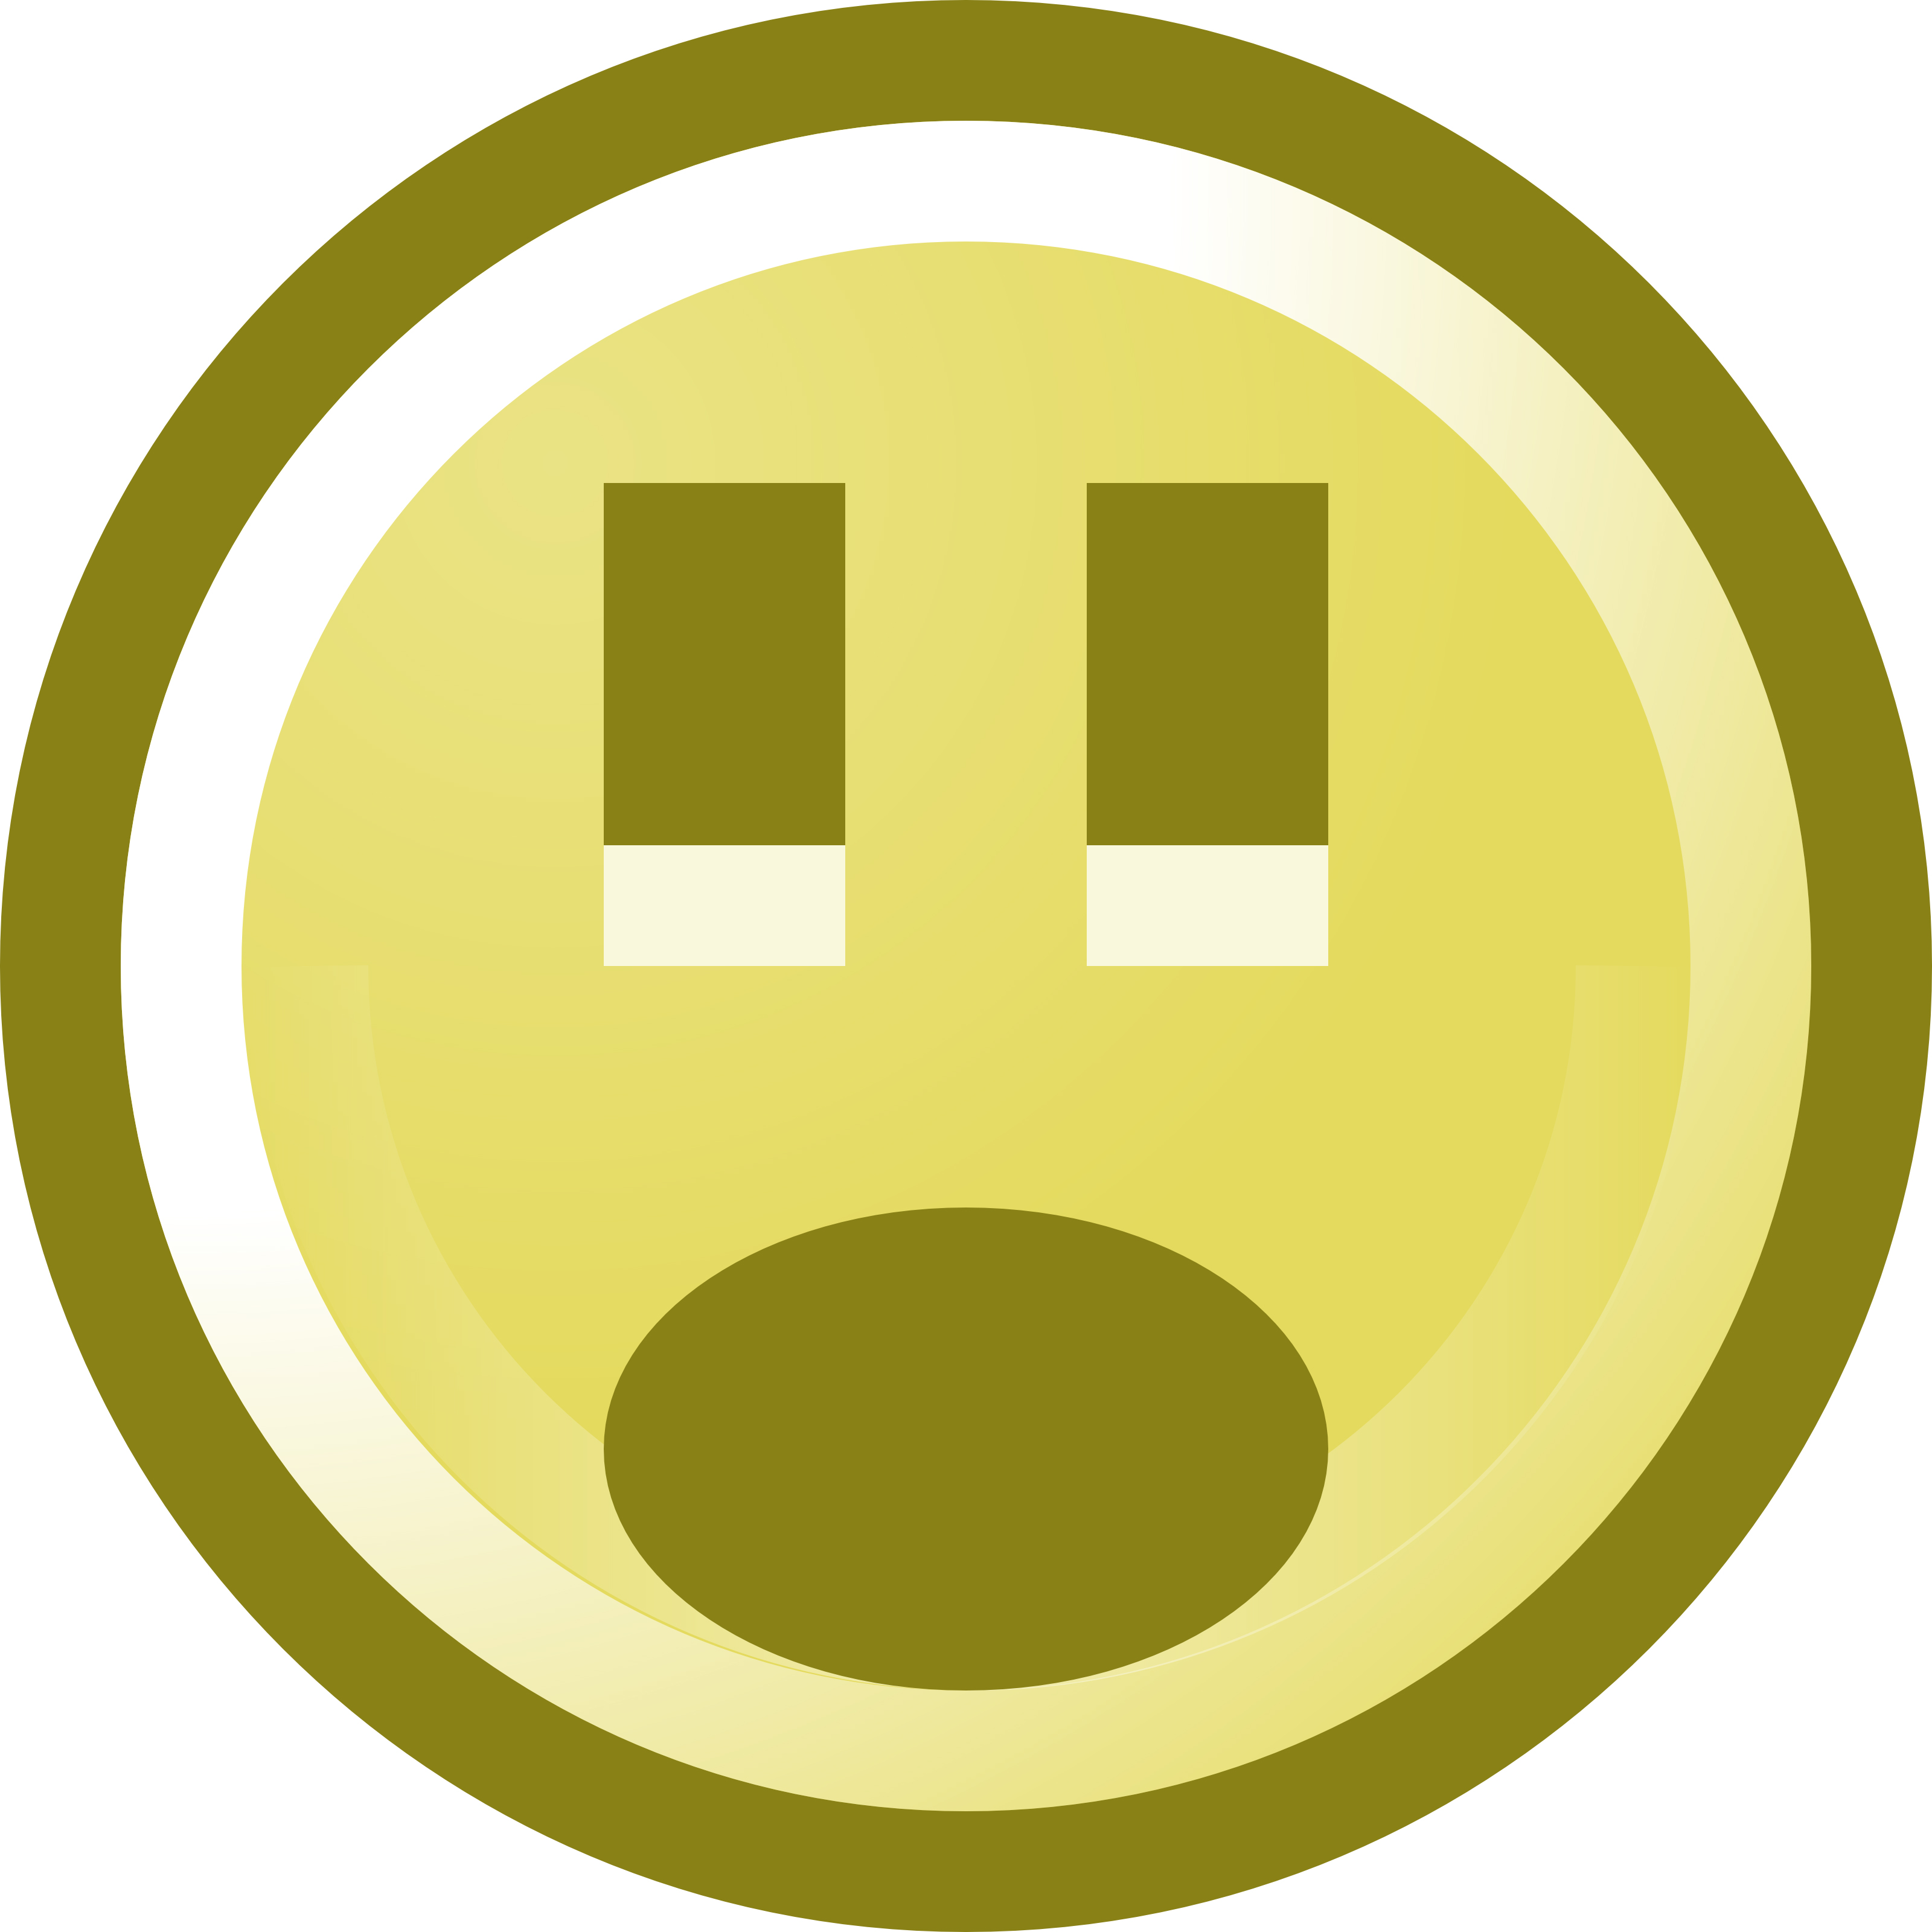 Shocked Smiley Faces - ClipArt Best